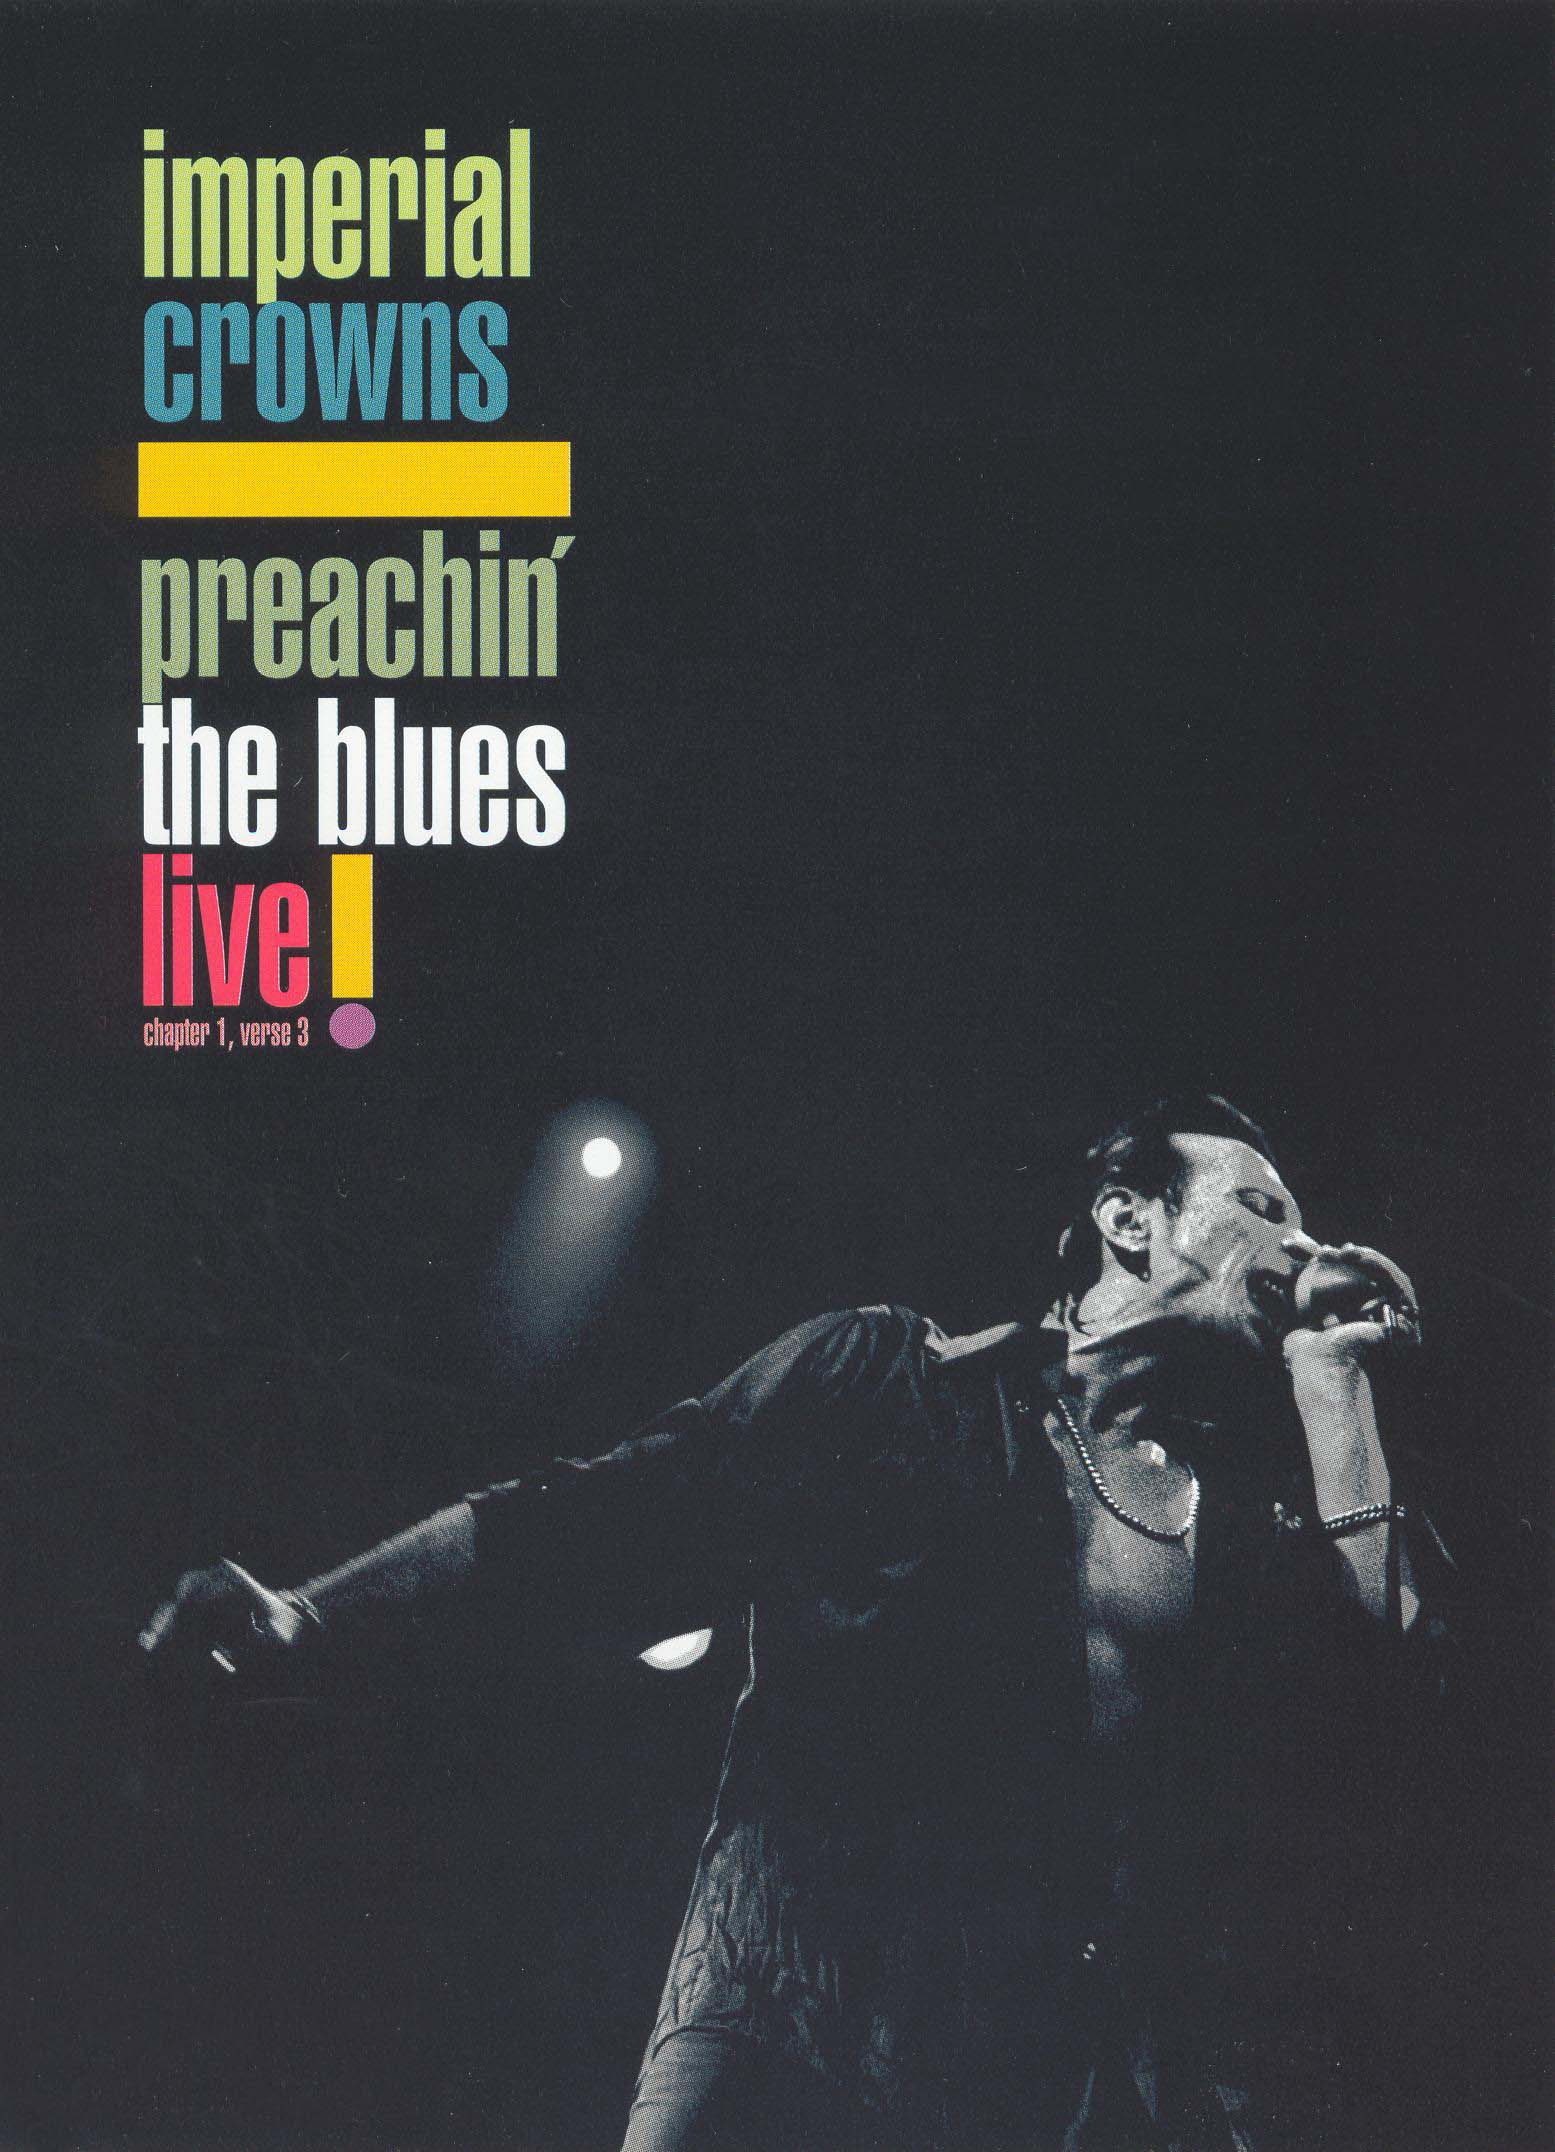 Imperial Crowns: Preachin' the Blues Live!